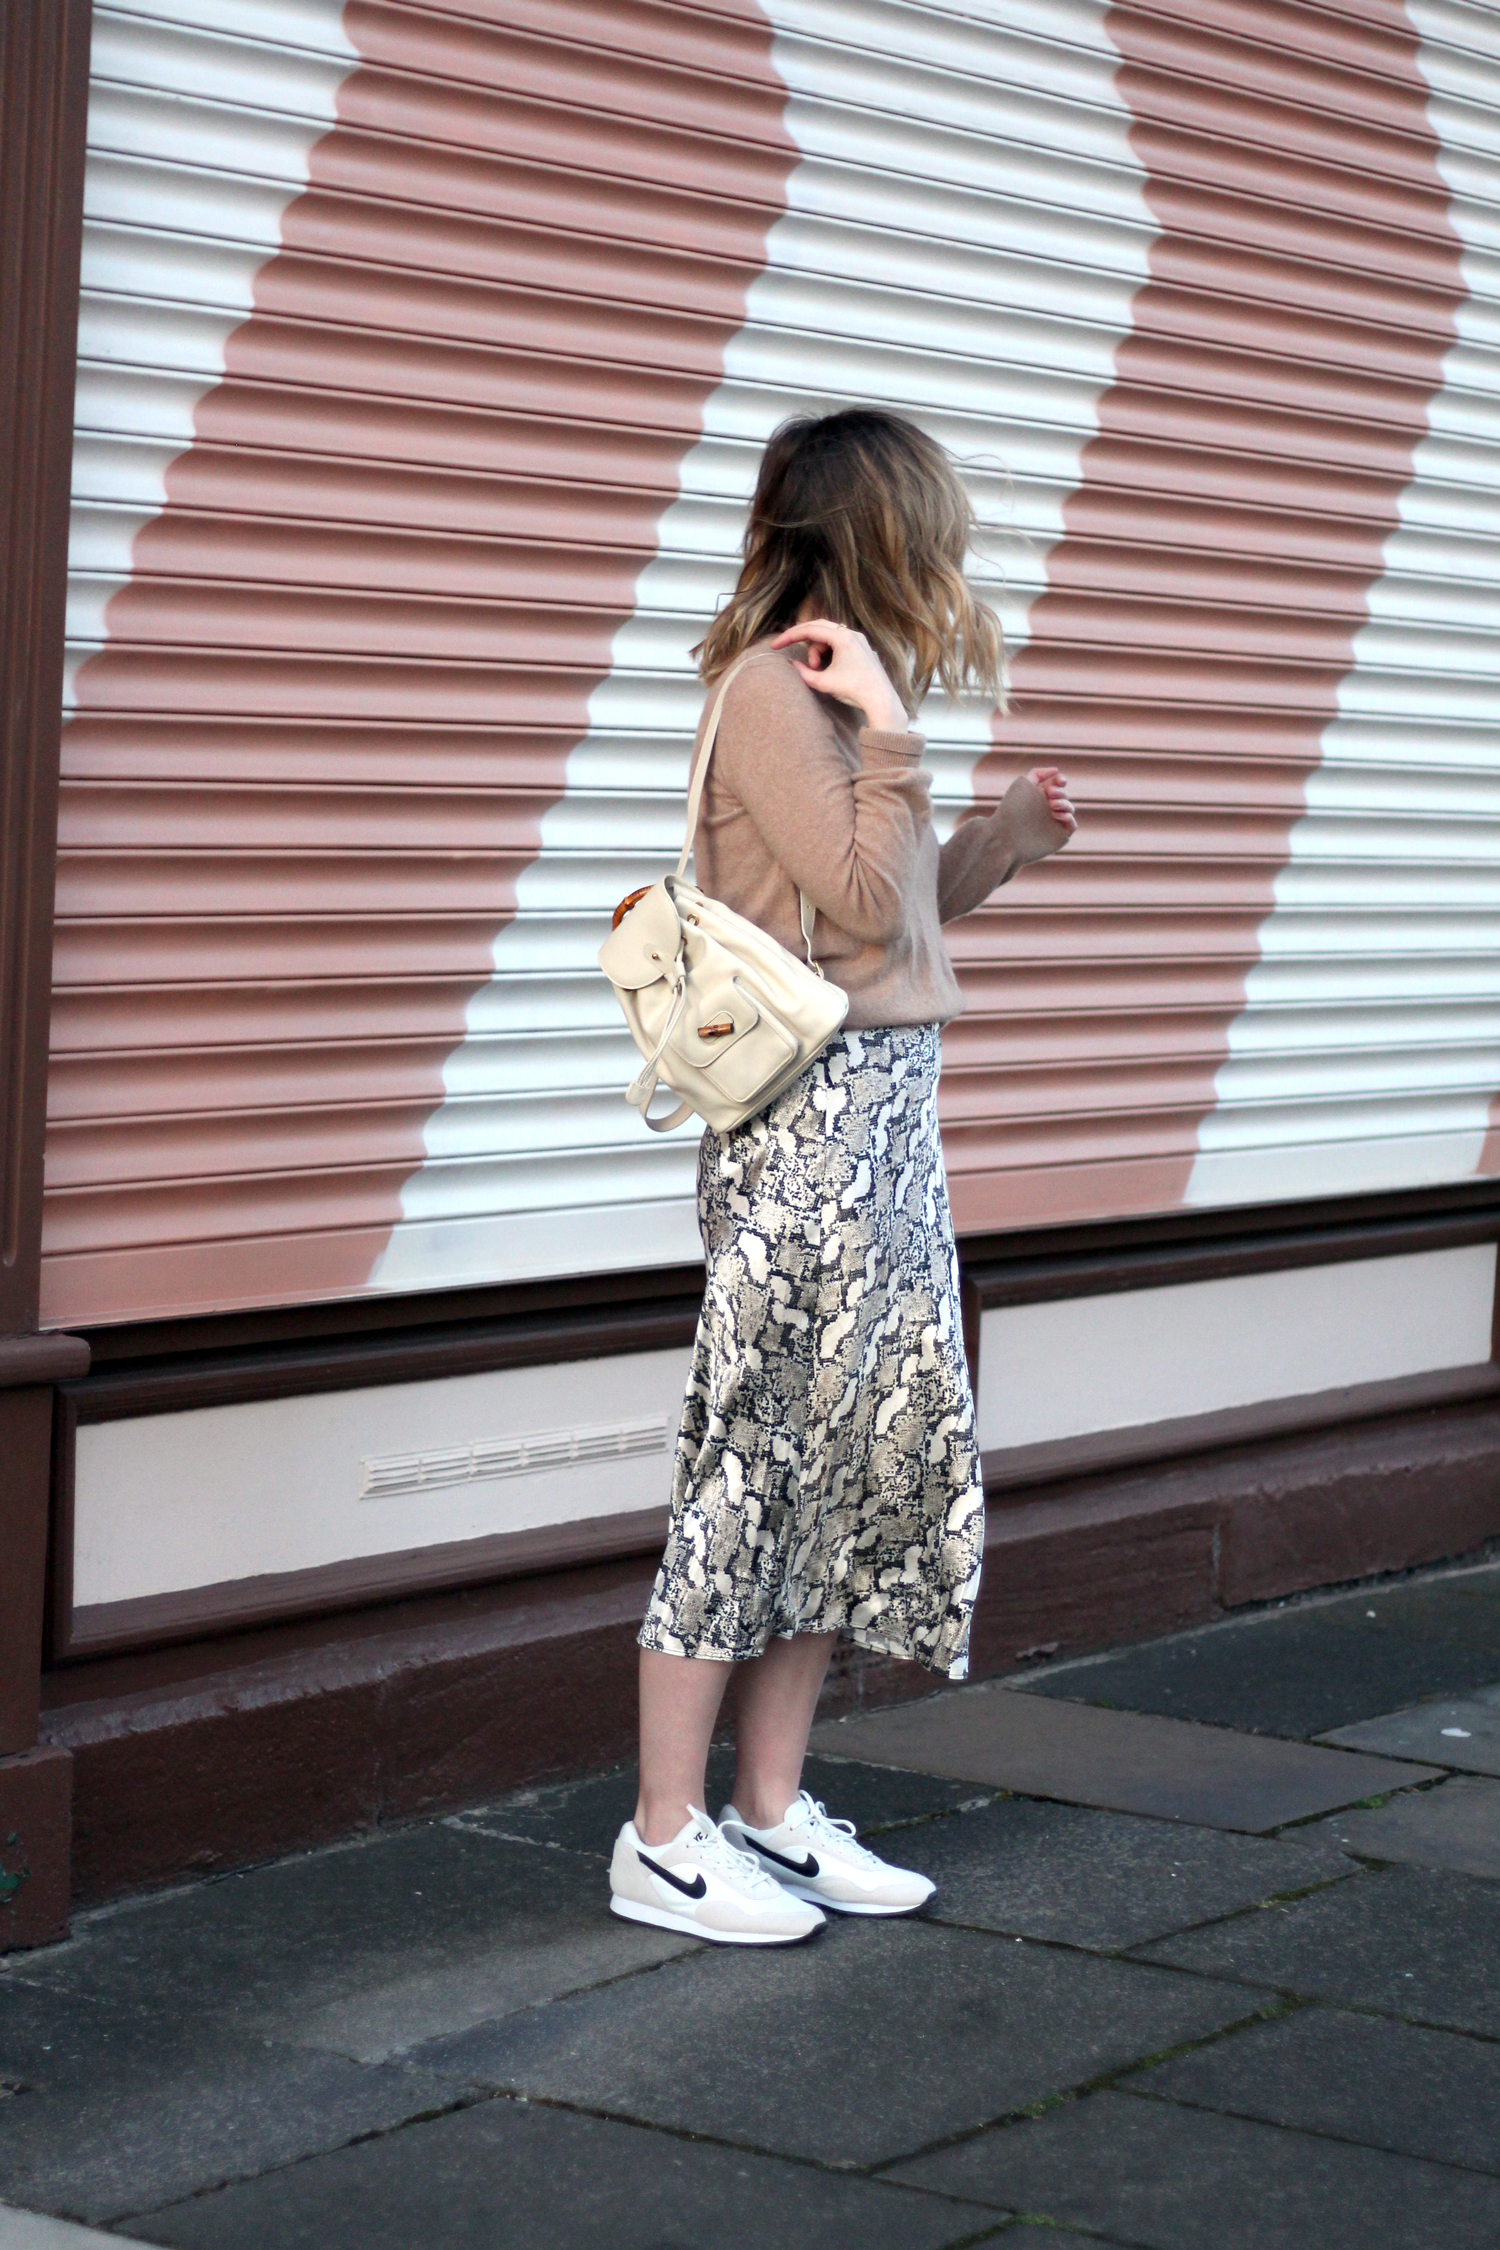 h&m-snakeprint-midi-skirt-vintage-gucci-backpack